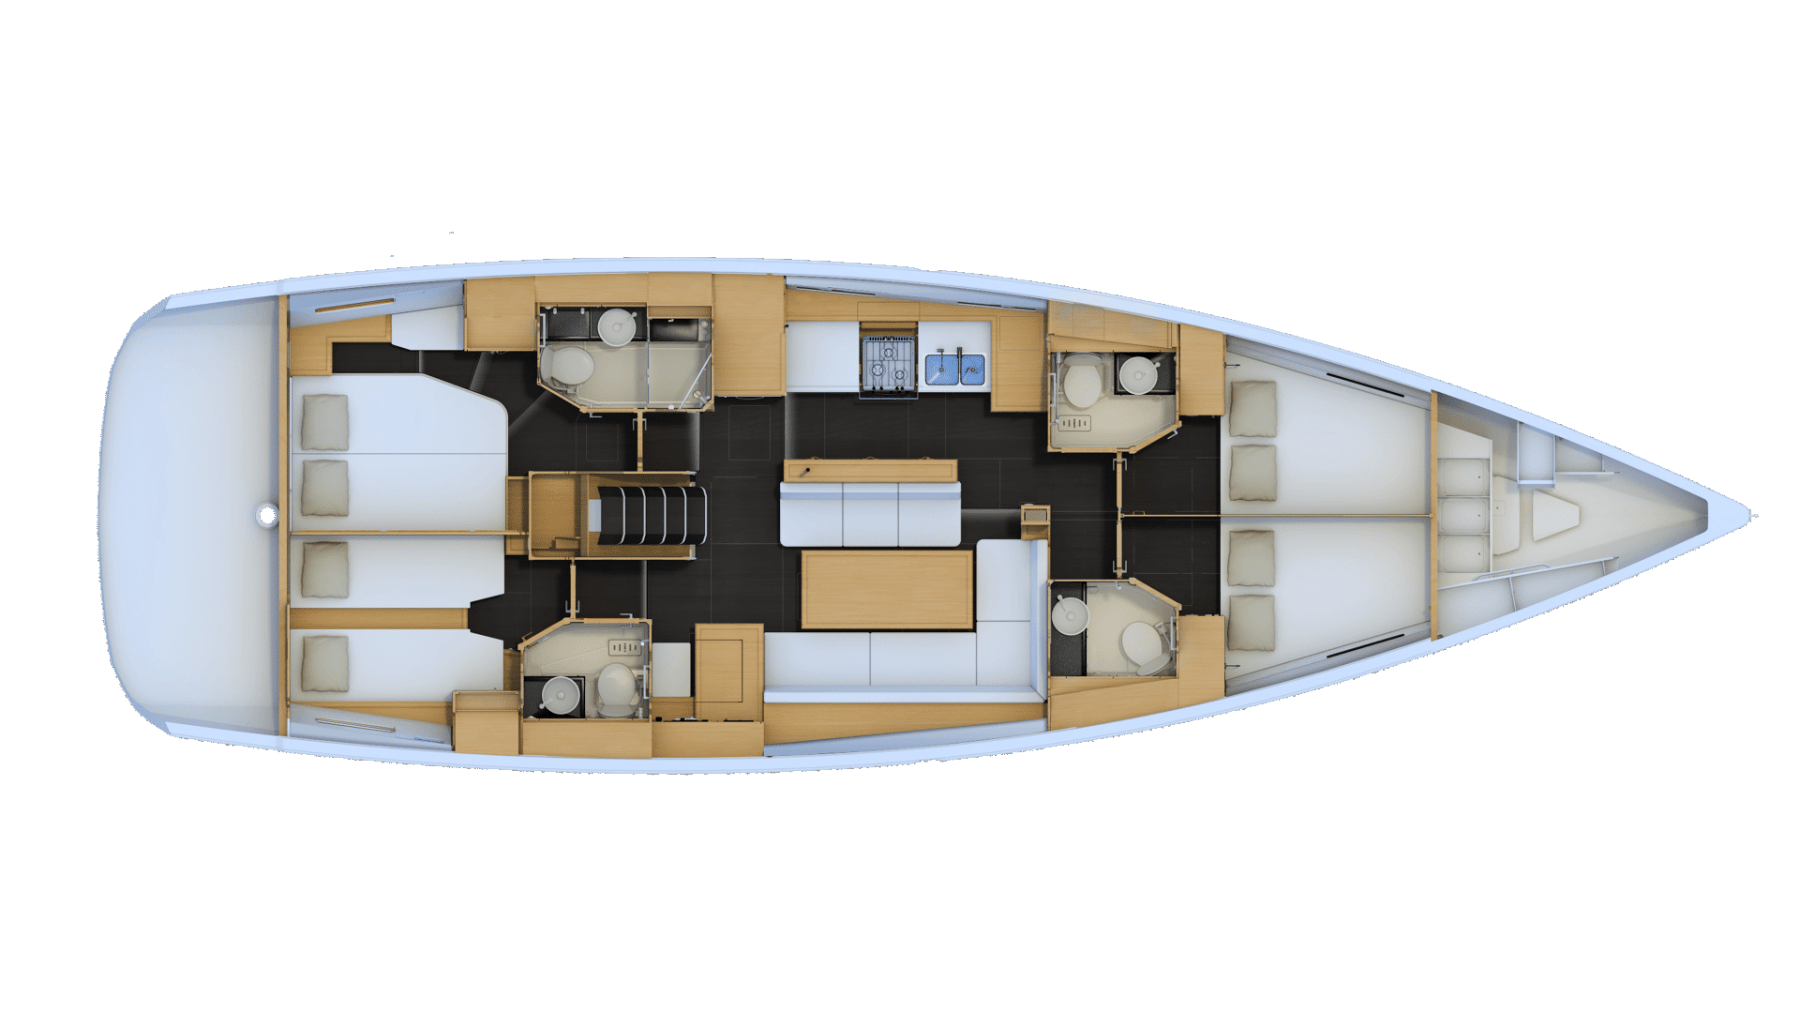 Jeanneau-54-layout-3-charter-ownership-yacht